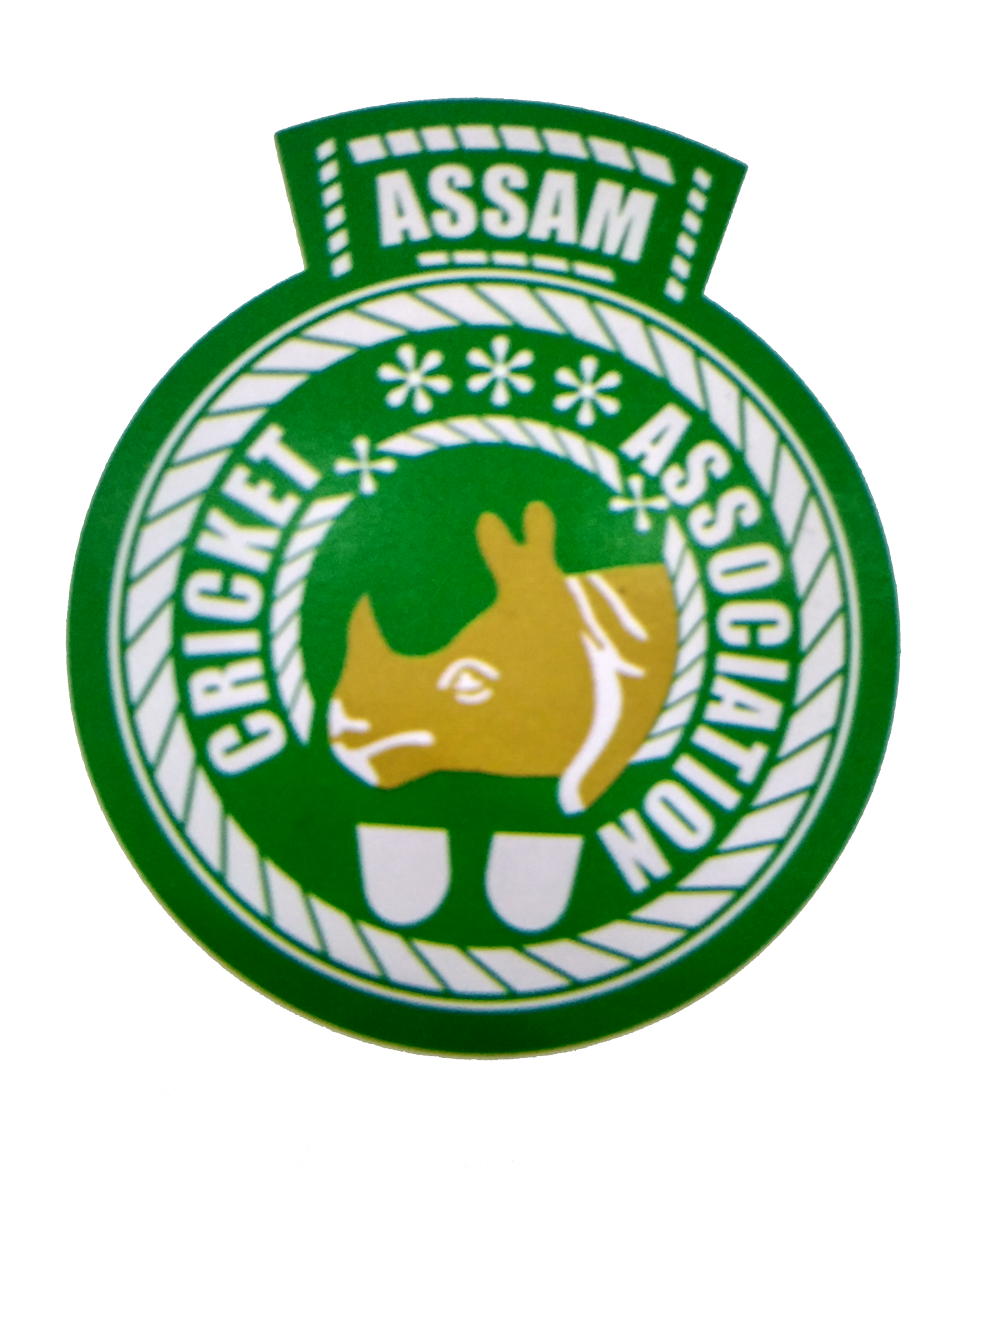 assamcricket-logo